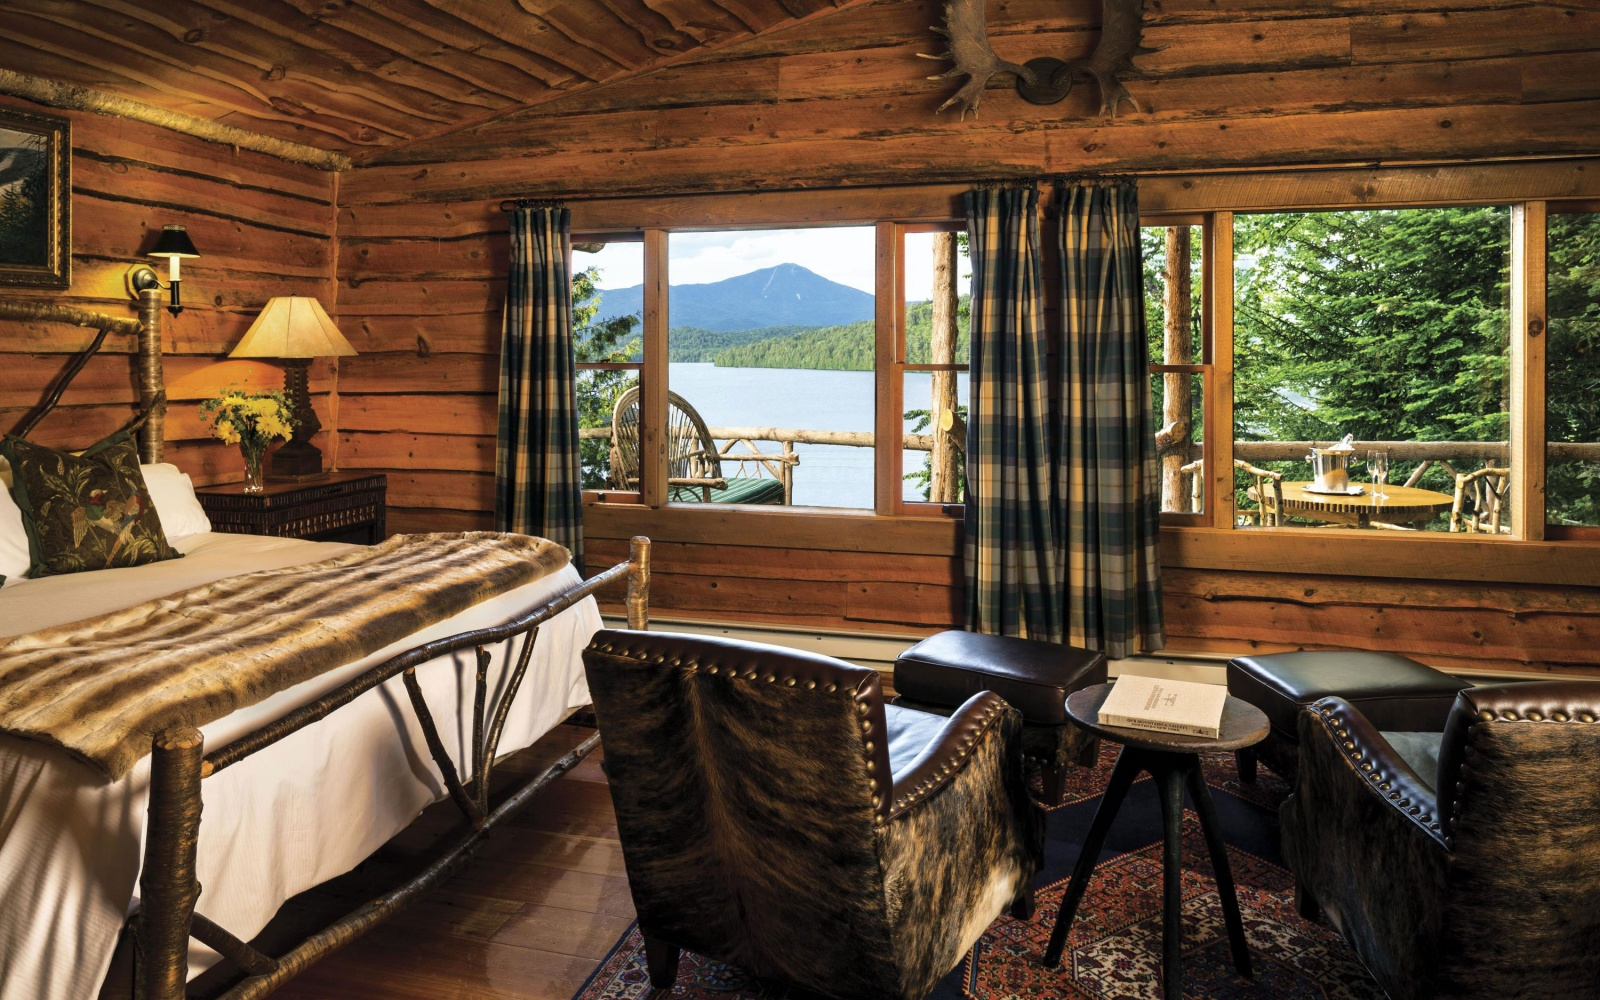 lake view room at Lake Placid Lodge in Lake Placid, NY